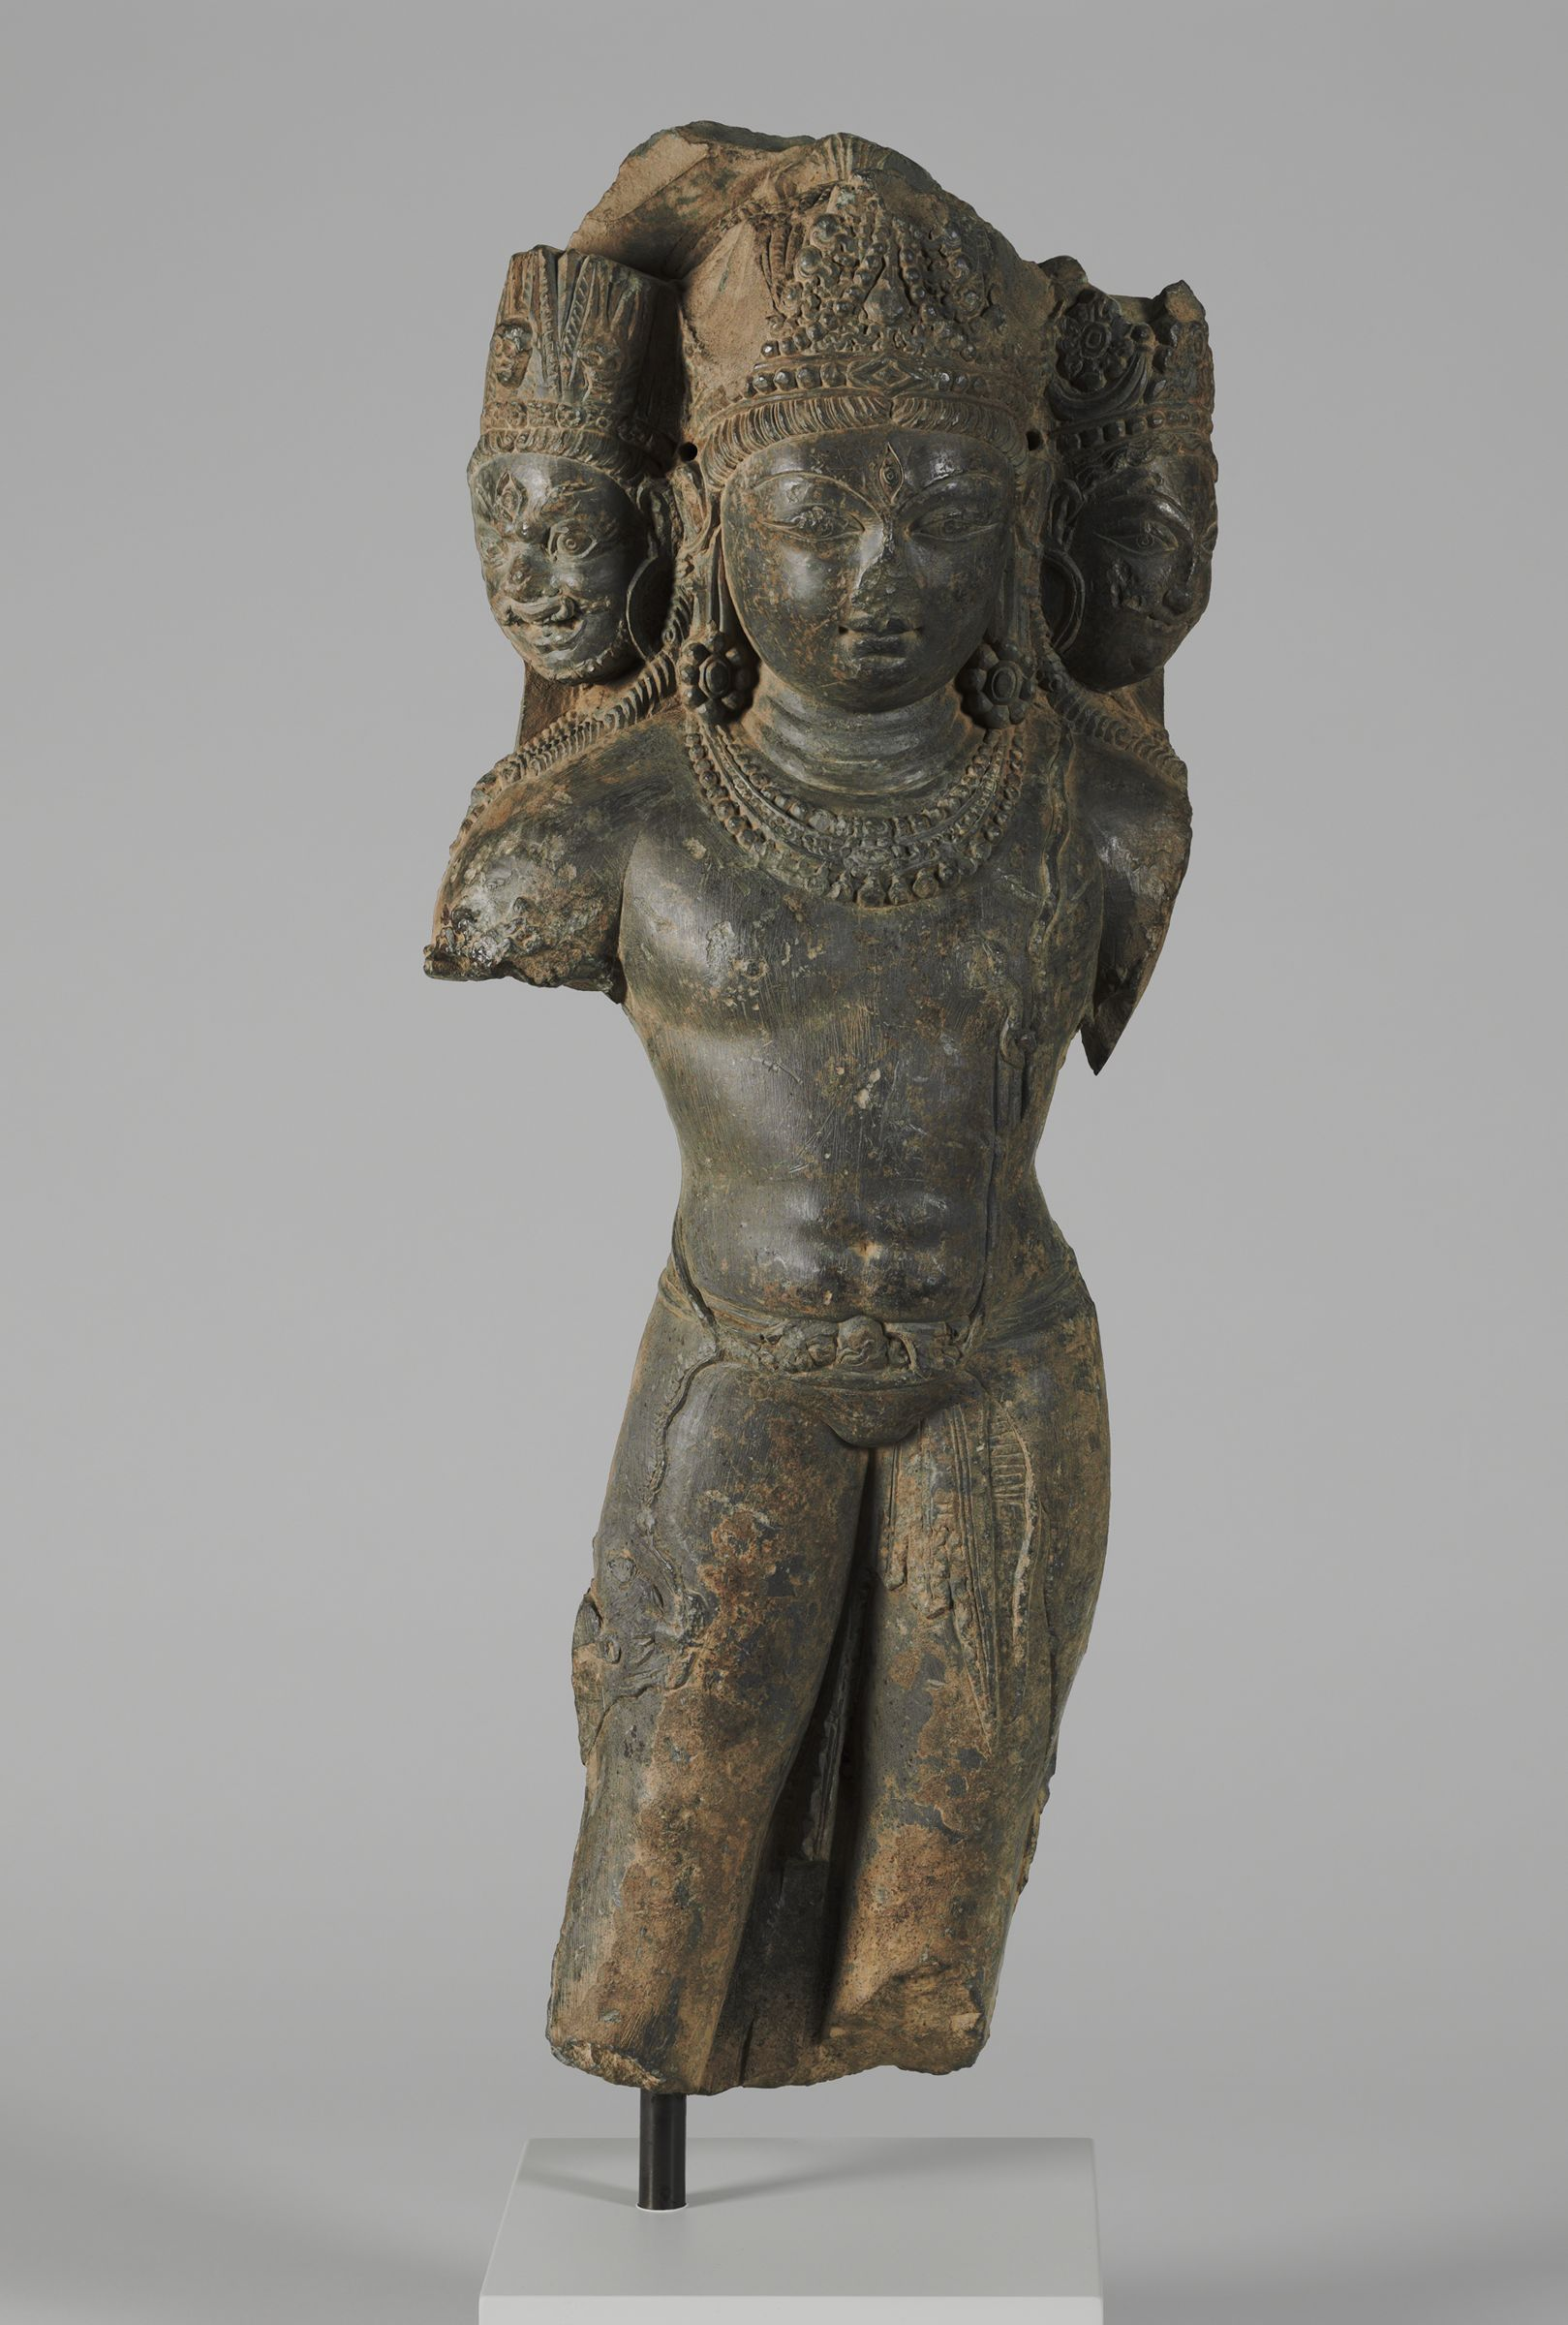 Standing Three-Headed Shiva